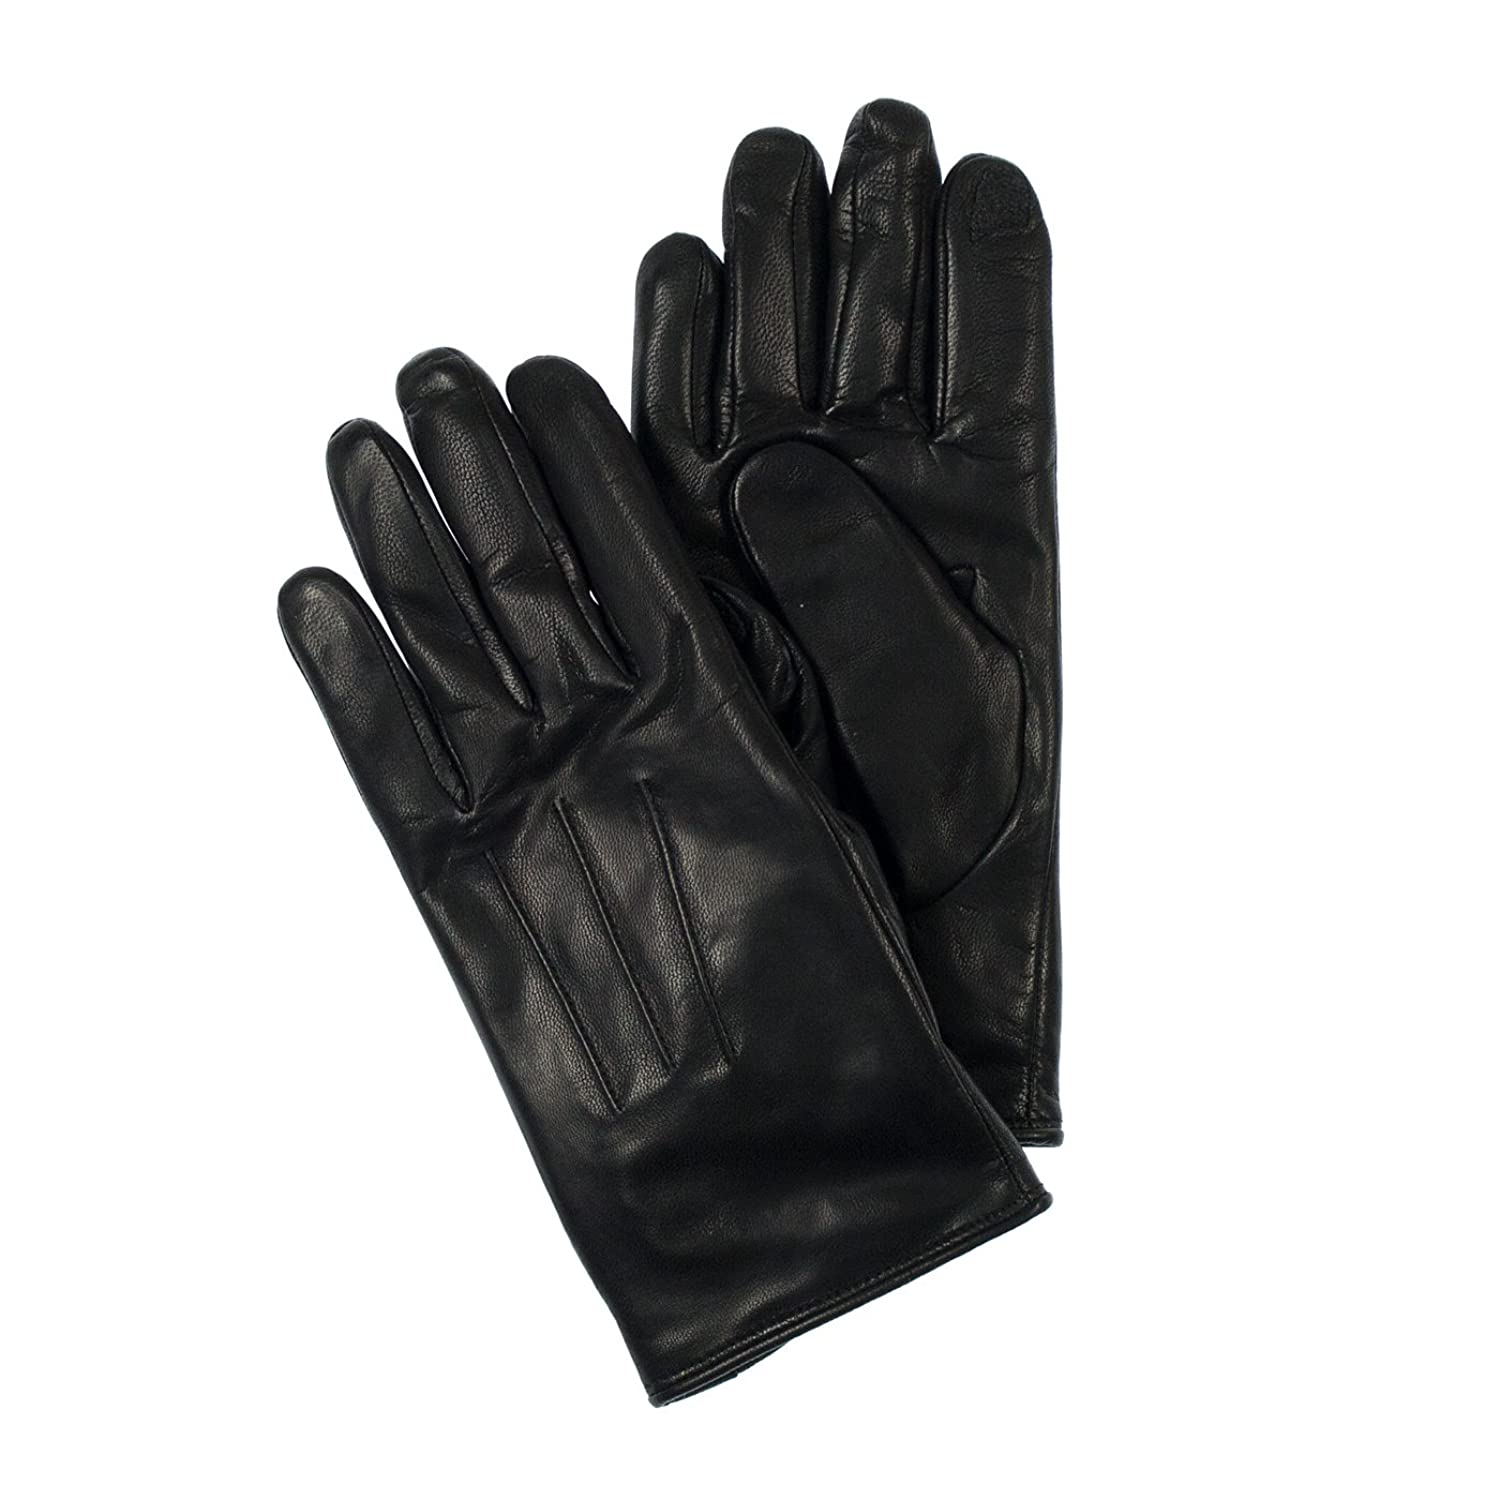 Isotoner womens leather gloves with fleece lining - Isotoner Womens Genuine Leather Smarttouch Technology Gloves Xl Black At Amazon Women S Clothing Store